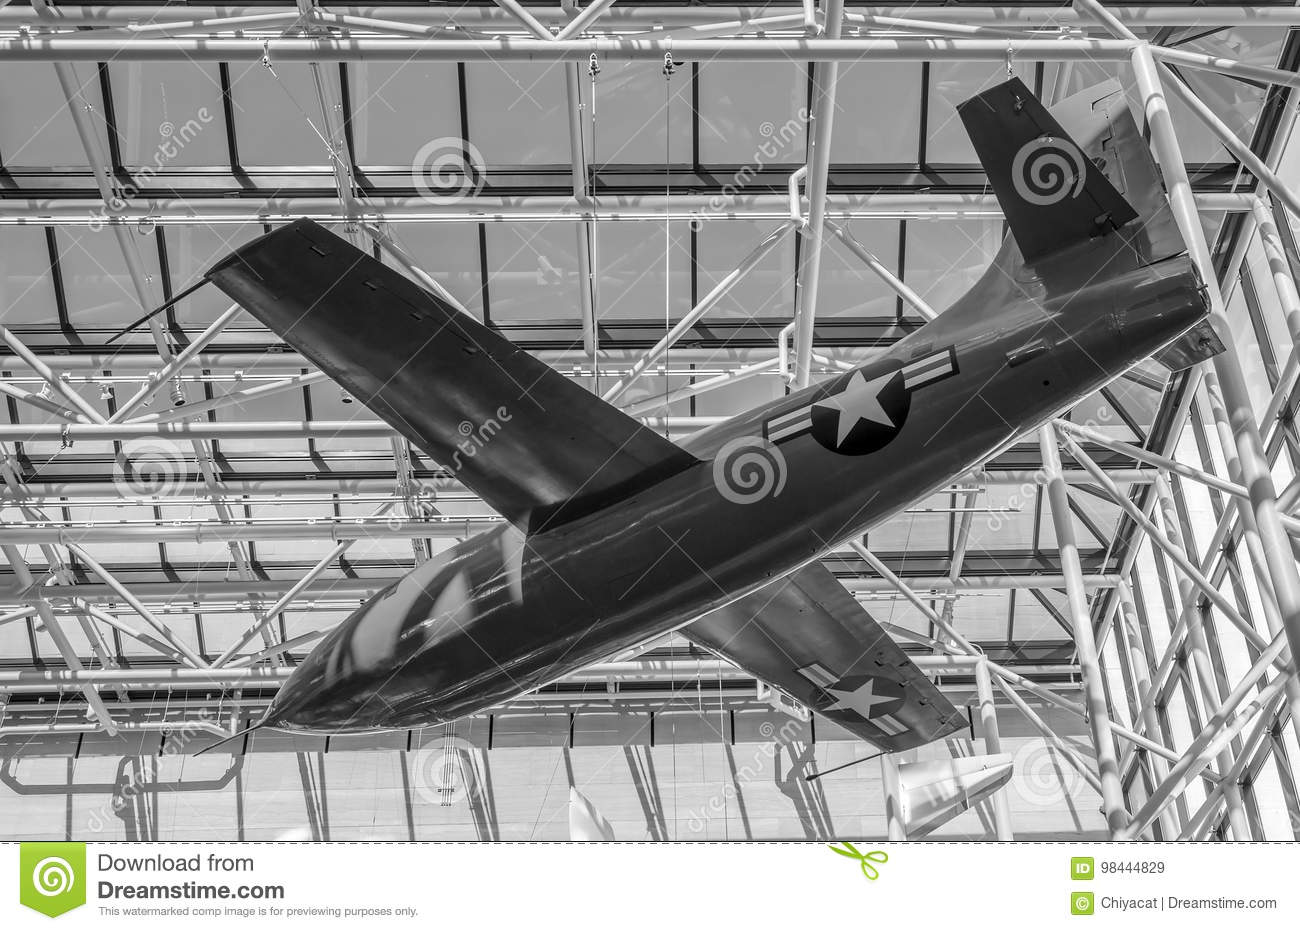 X-1 Supersonic Aircraft, World`s First Aircraft That Exceeded The